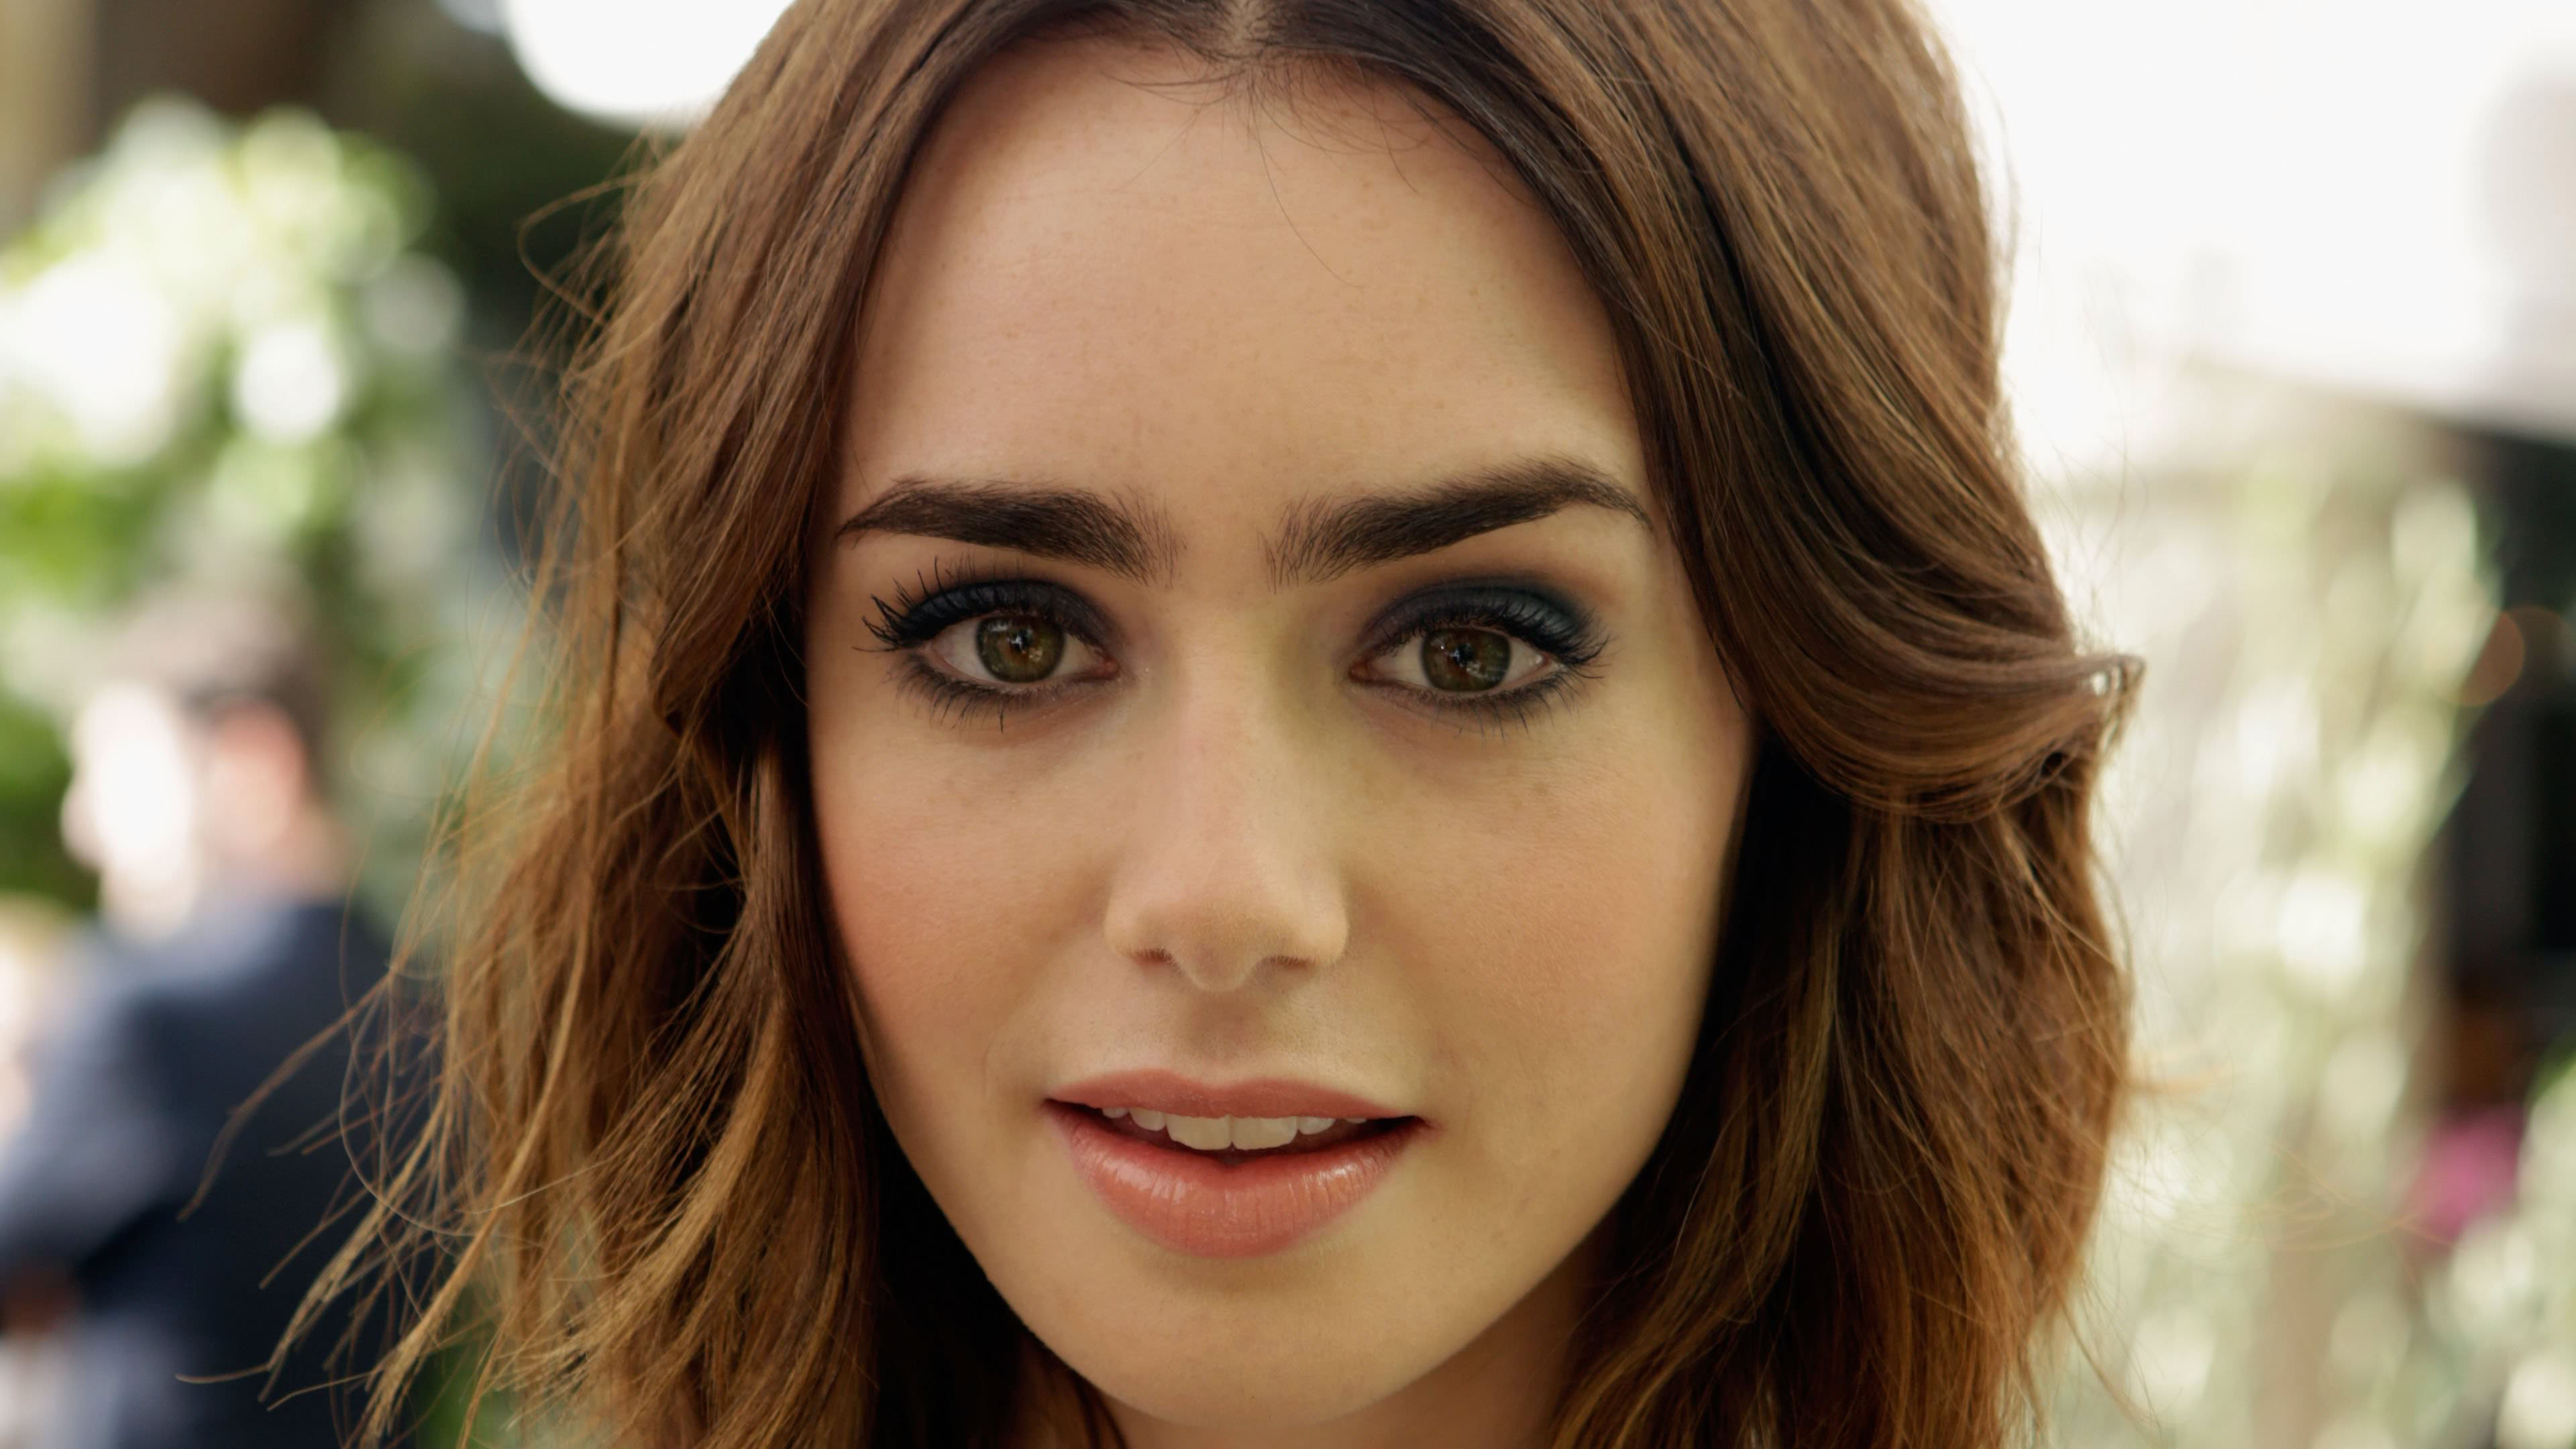 4k lily collins cute 1536863282 - 4k Lily Collins Cute - model wallpapers, lily collins wallpapers, hd-wallpapers, girls wallpapers, celebrities wallpapers, 4k-wallpapers